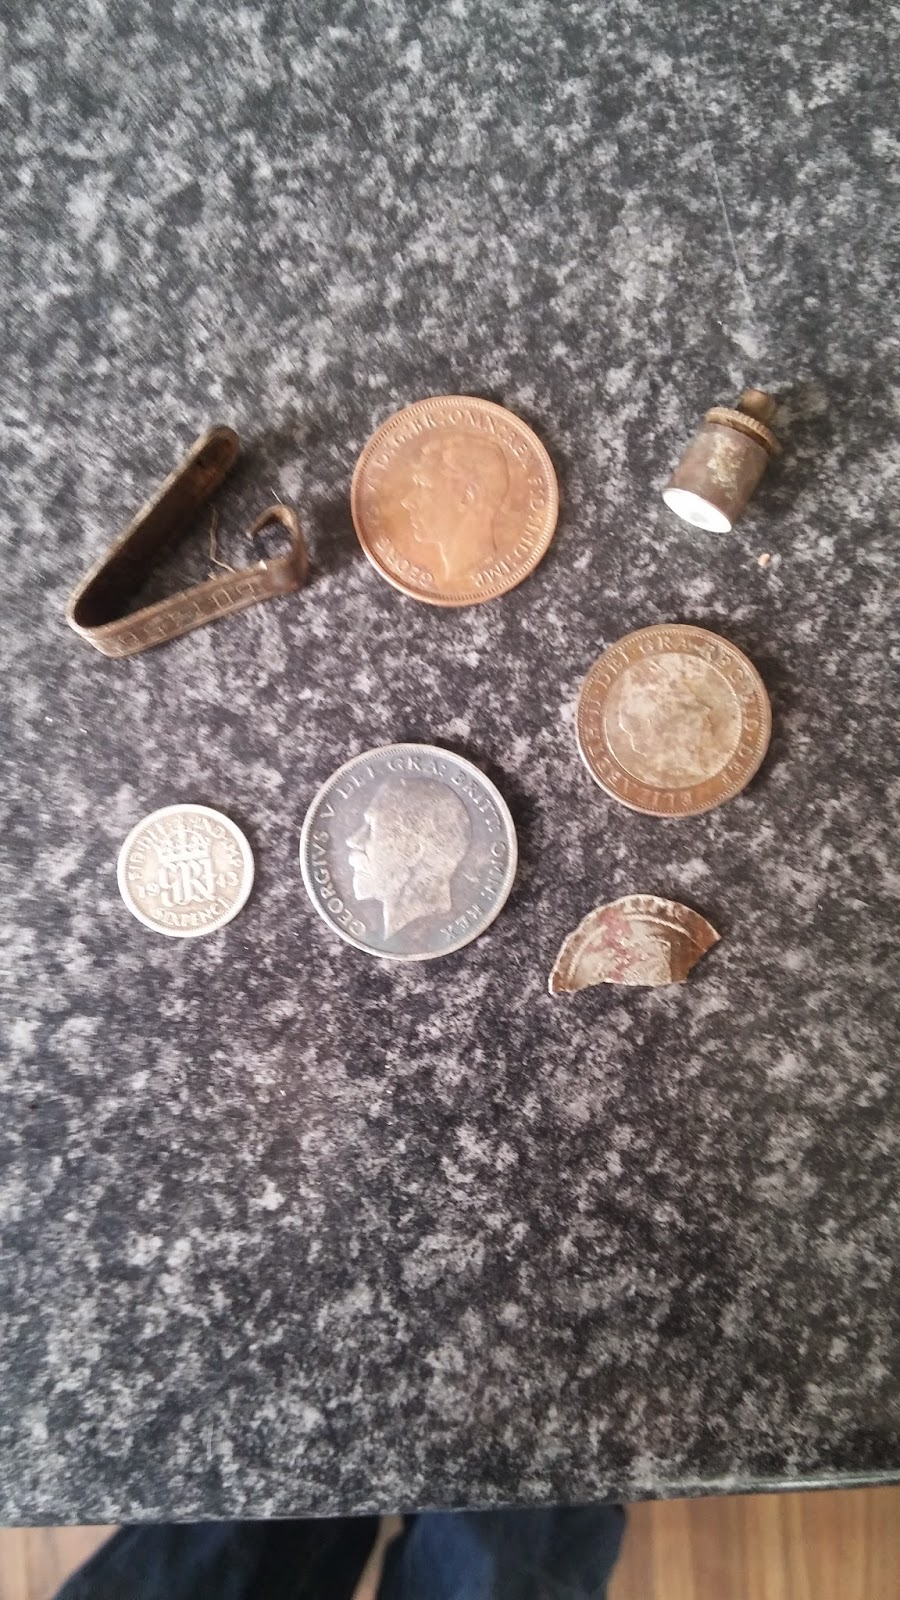 some metal detecting finds